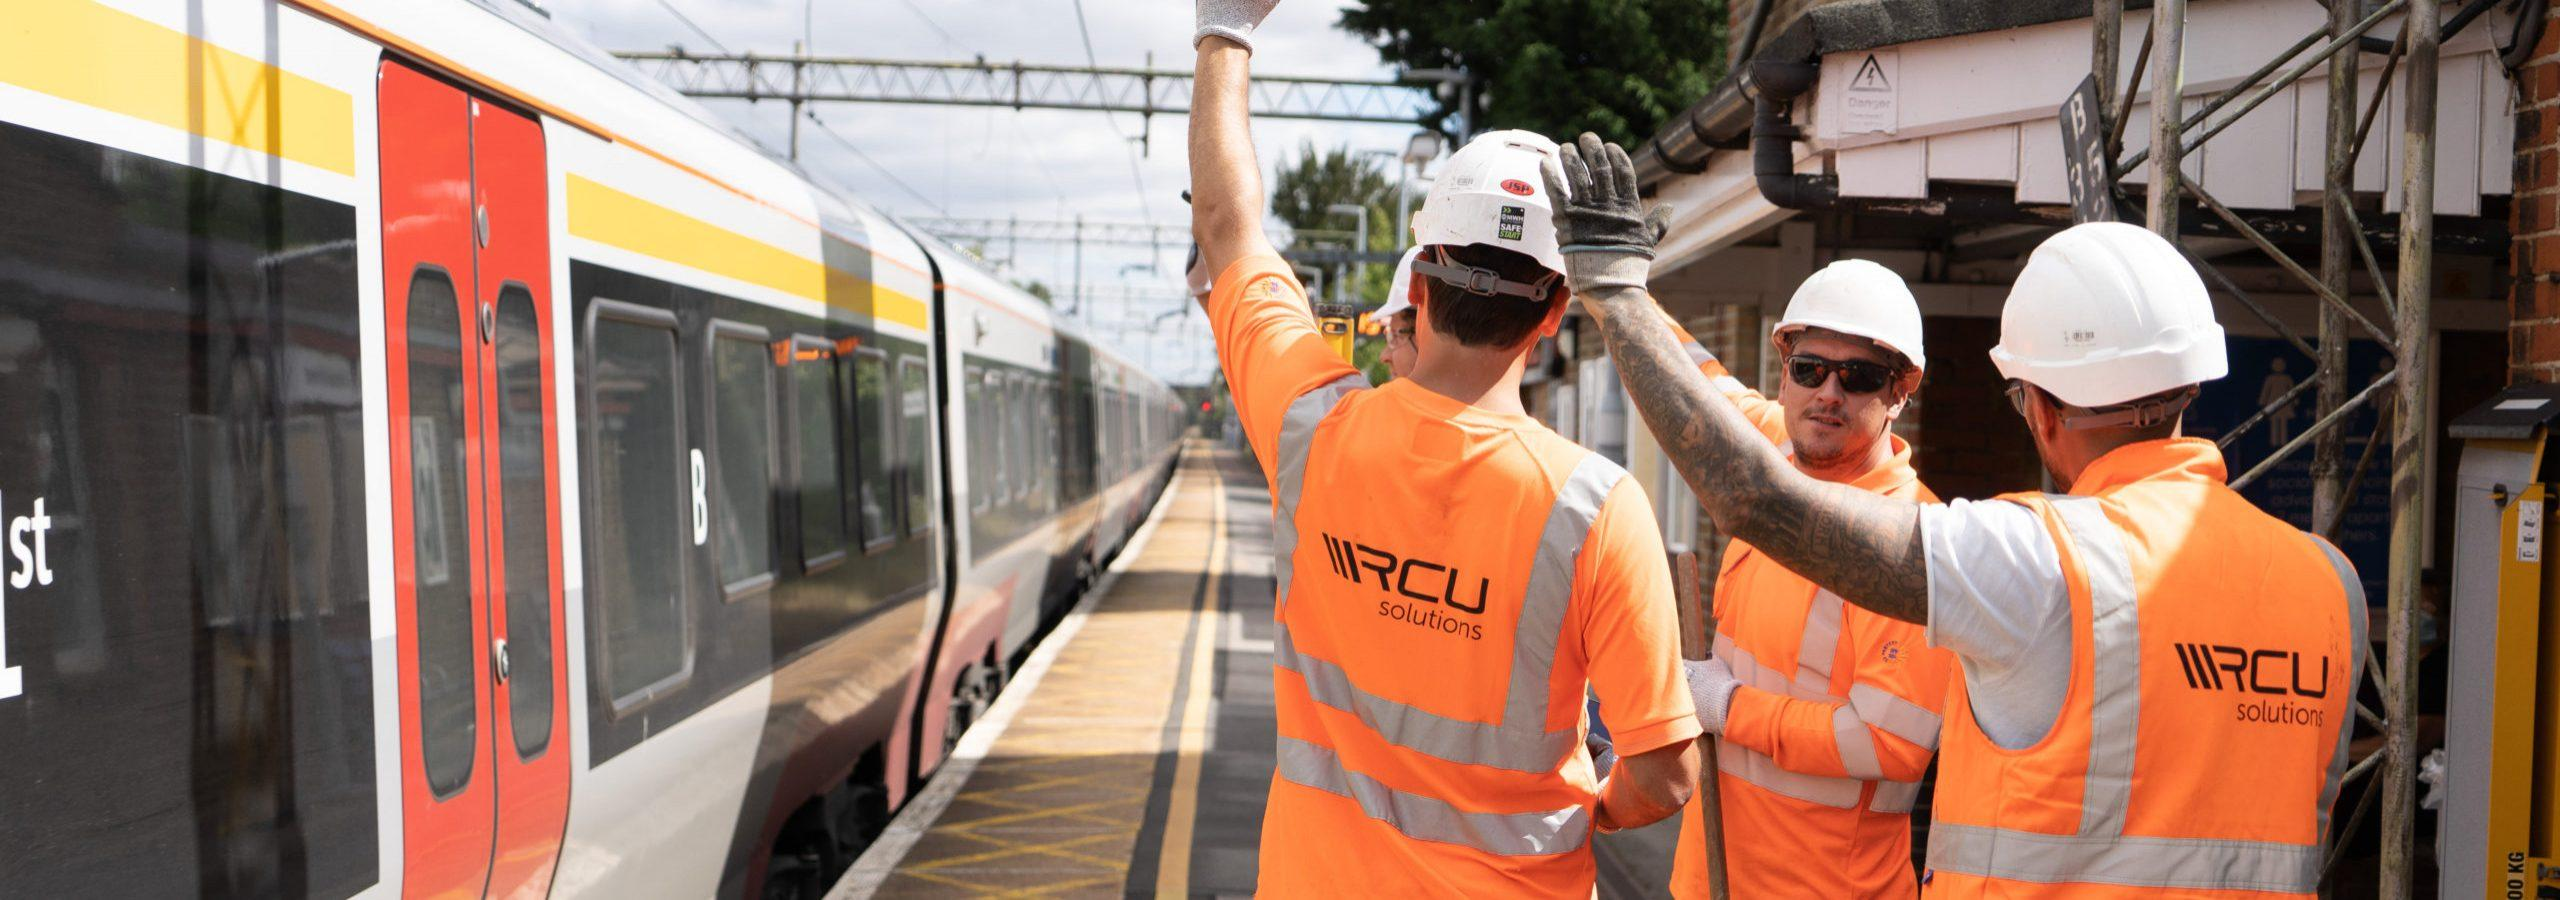 RCU Solutions | Rail services